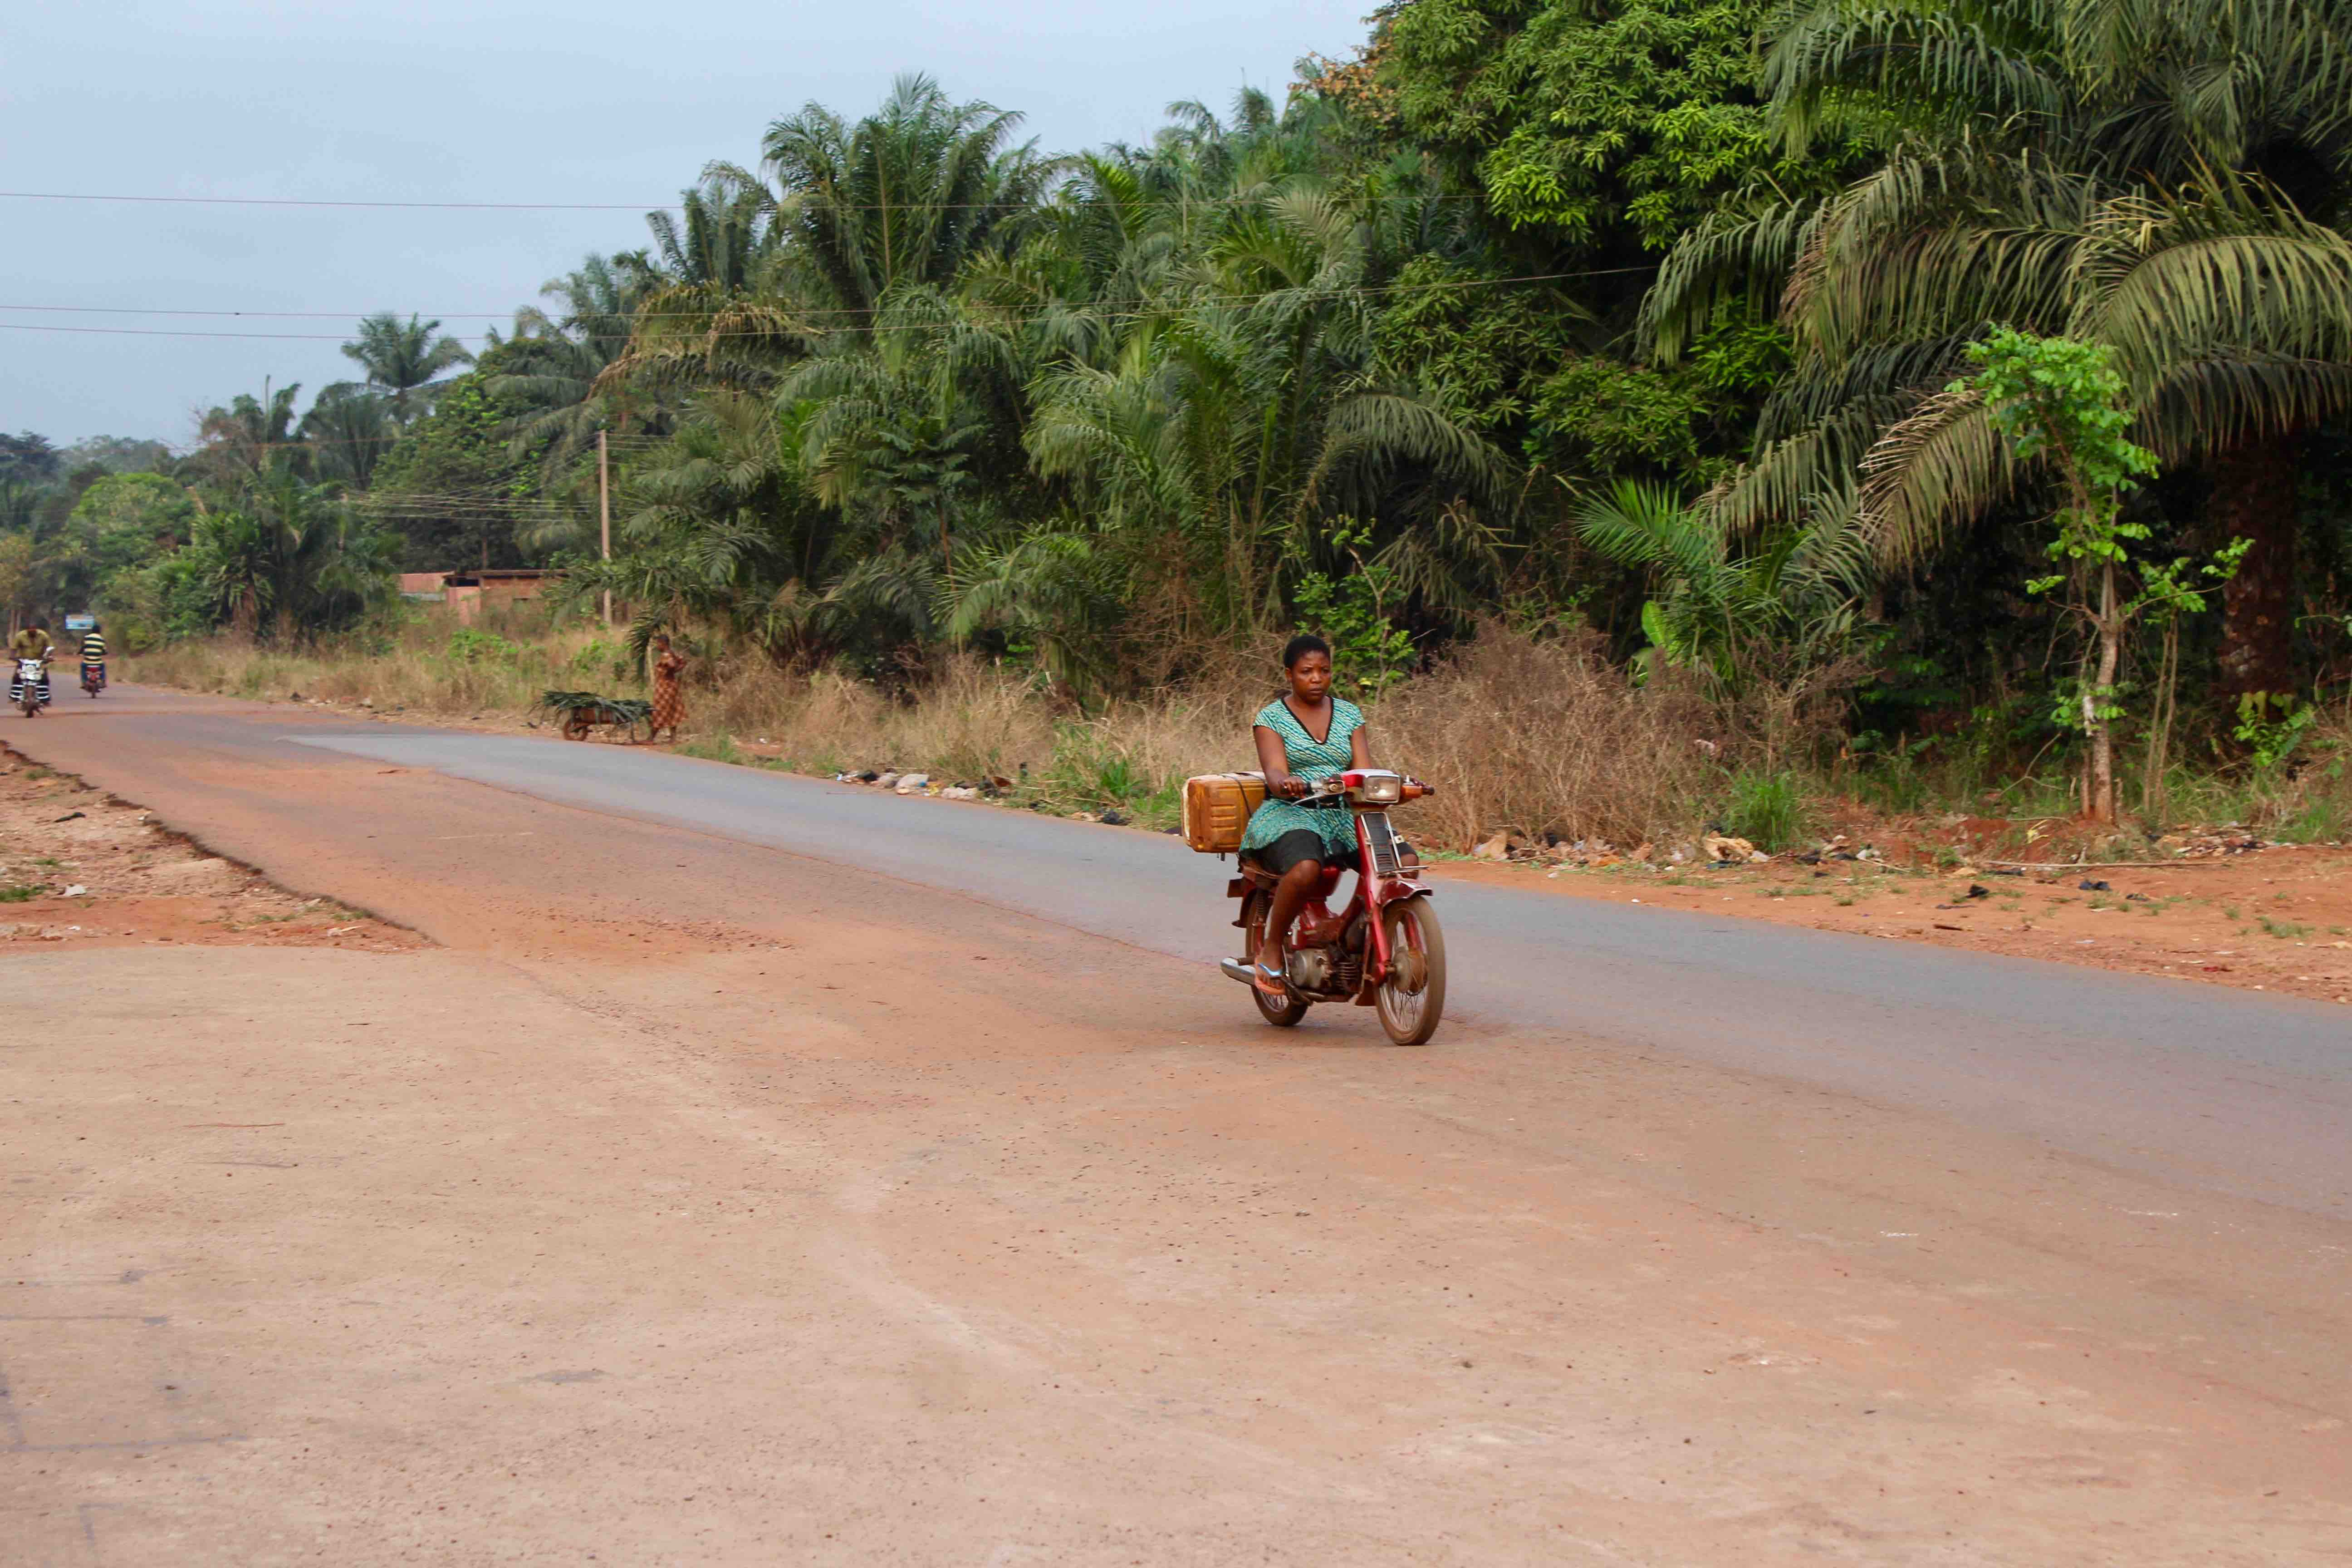 Igbo woman, motorcycling in Obolo Village, Enugu State, Nigeria. #JujuFilms